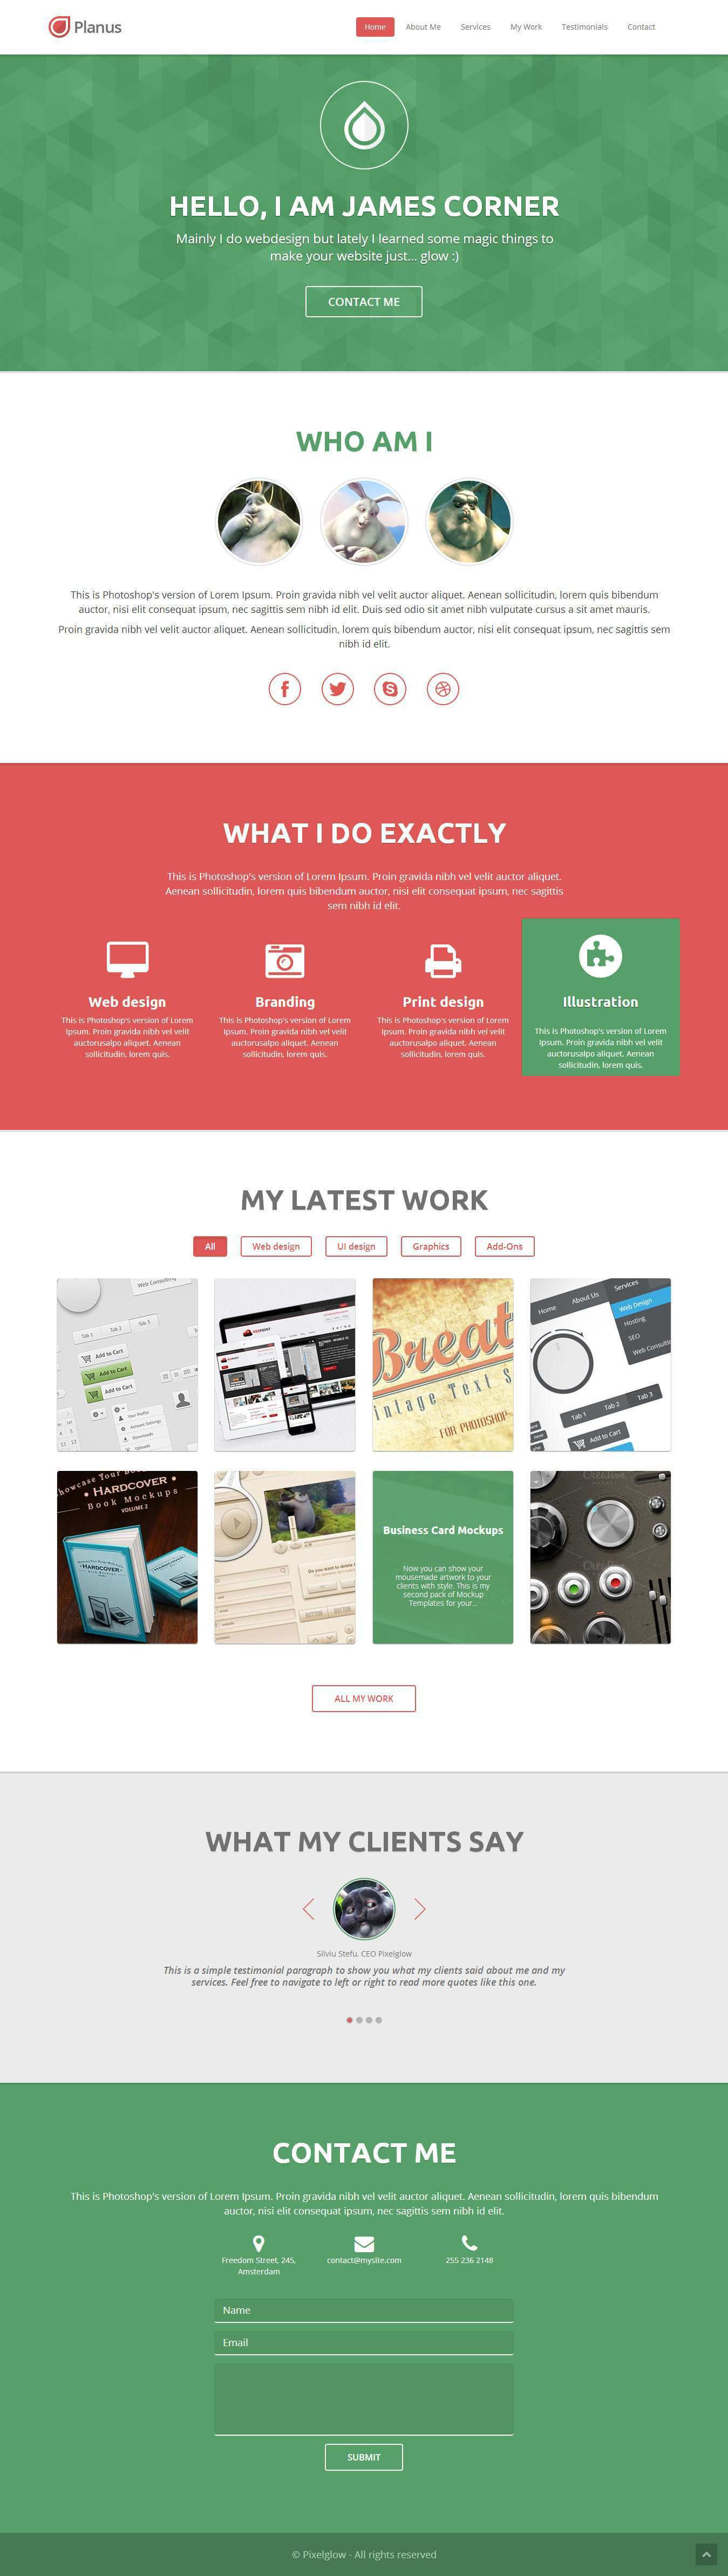 Indesign One Pager Template Indesign Template Google Templates